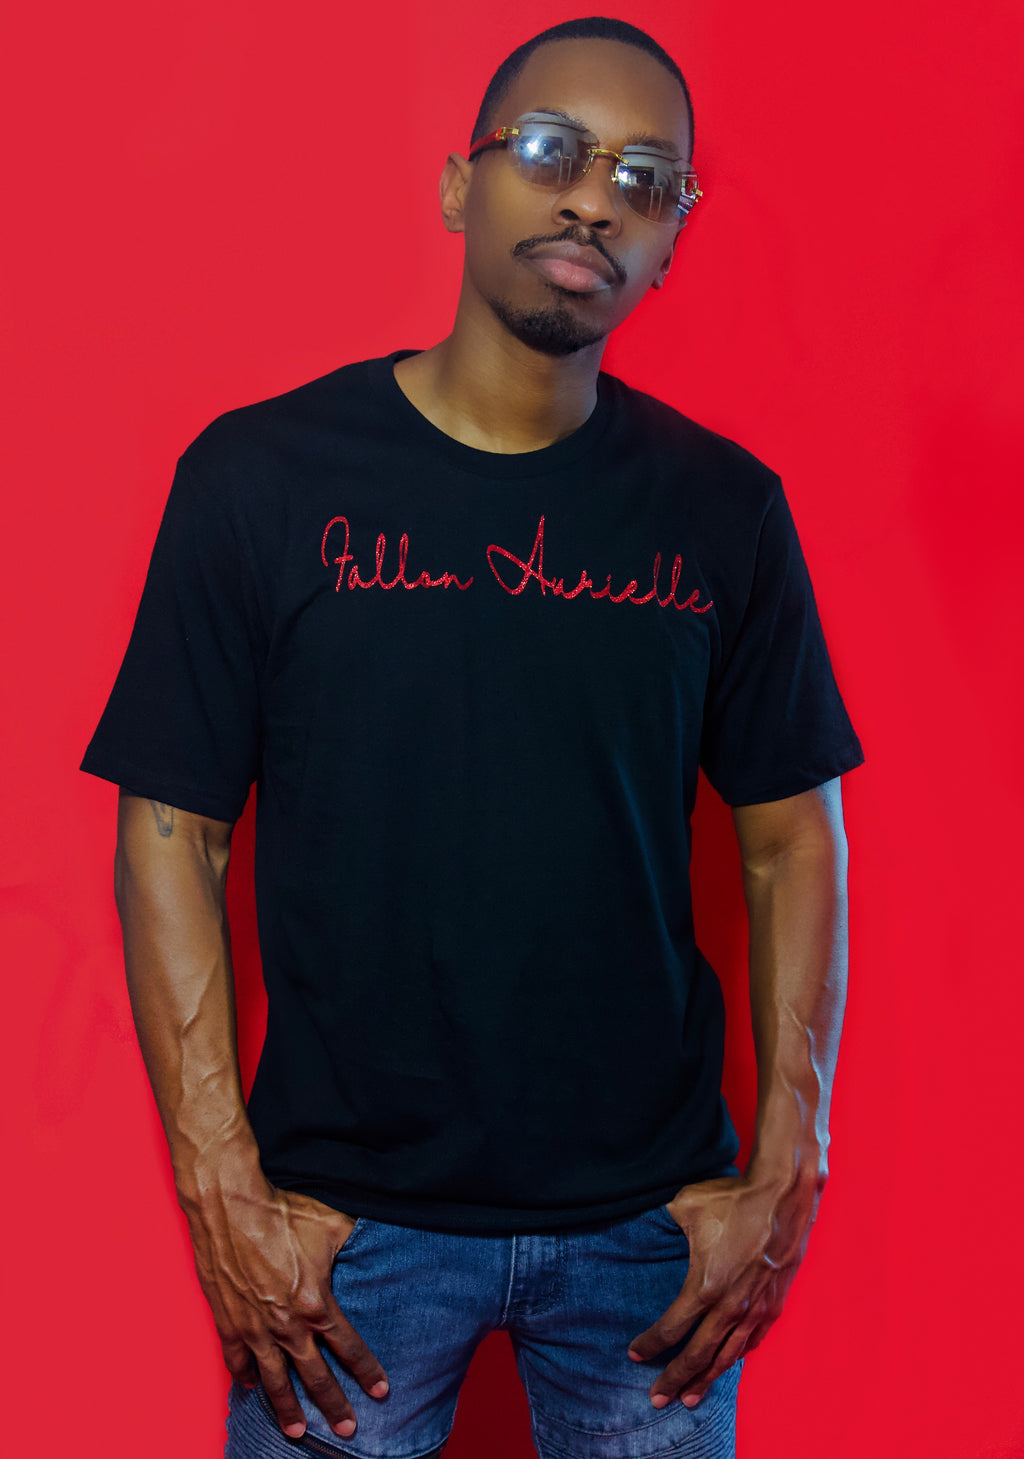 Fallon Aurielle Unisex Signature T-Shirt (Black)